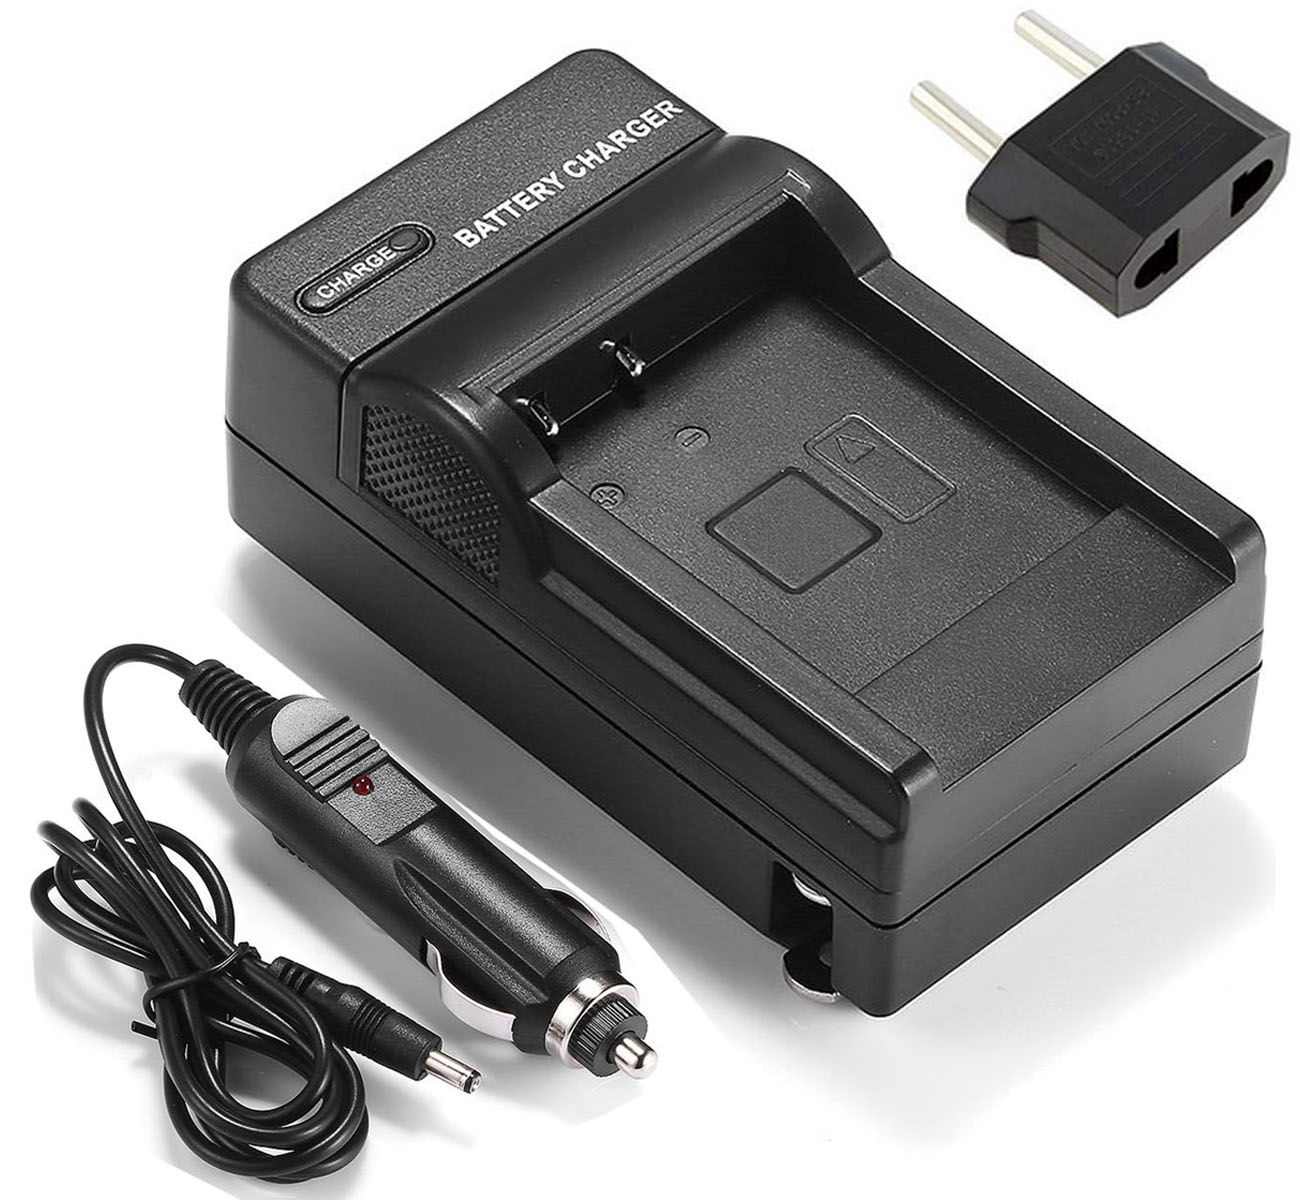 Battery Charger for Panasonic HDC-HS9 HDC-HS350 Camcorder HDC-HS20 HDC-HS250